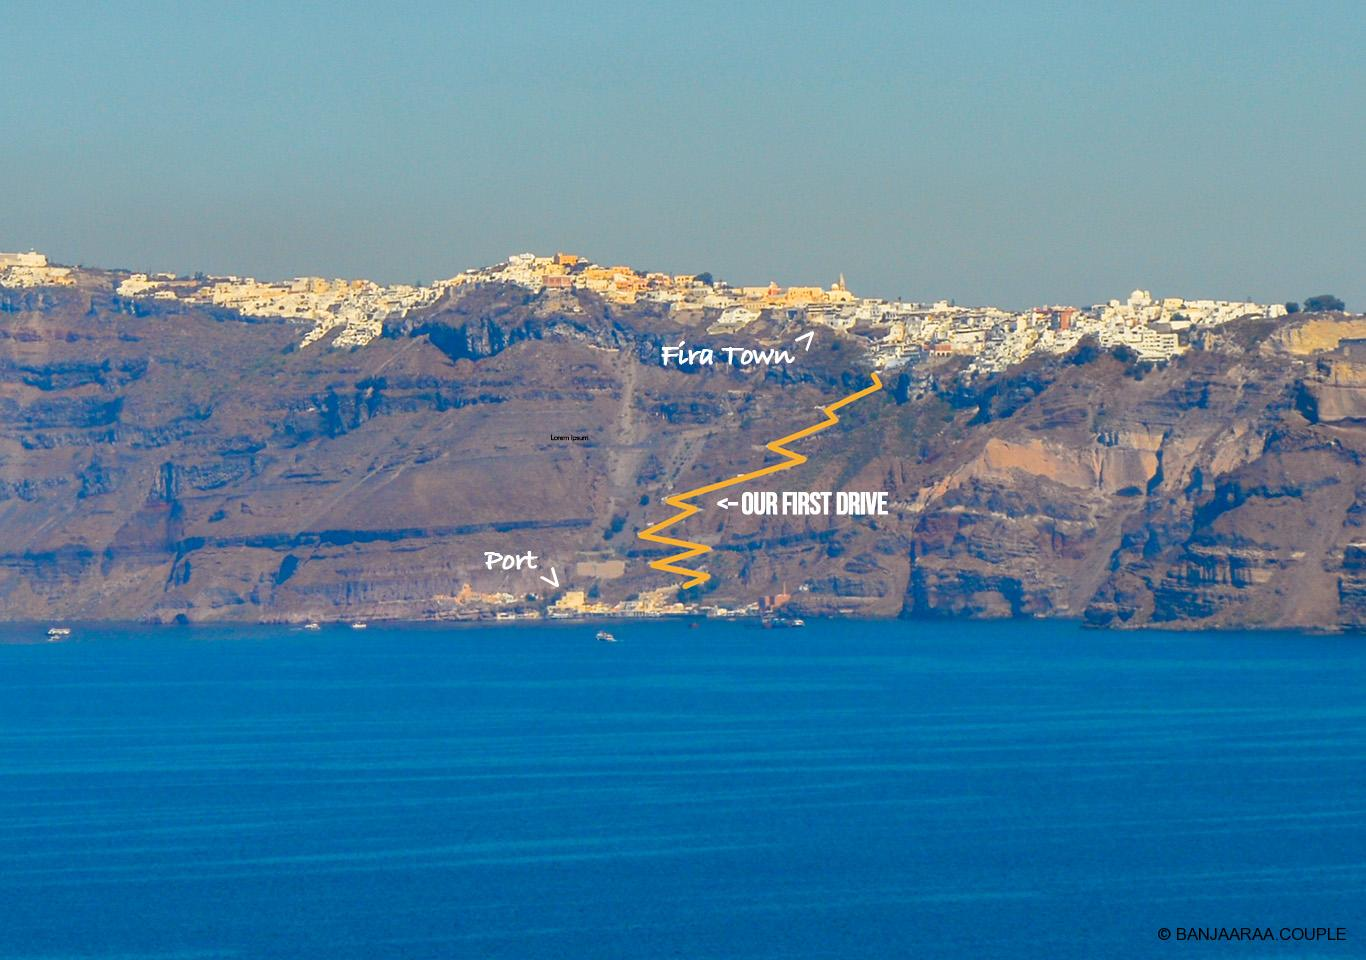 Drive from port to Fira town is steep. From Fira you further drive to Oia